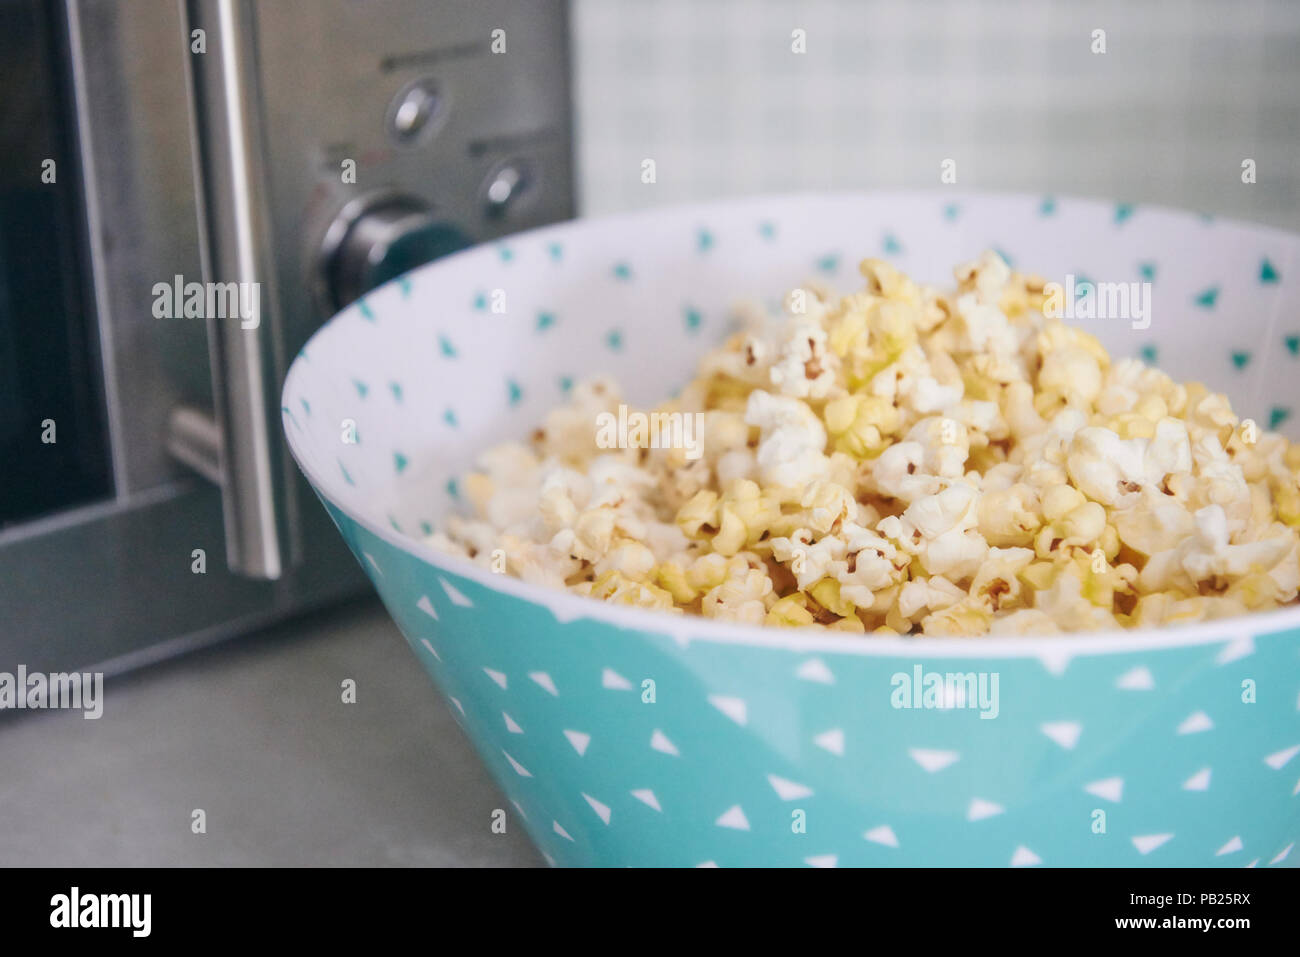 https www alamy com freshly popped microwavable popcorn in a teal and white bowl image213334126 html